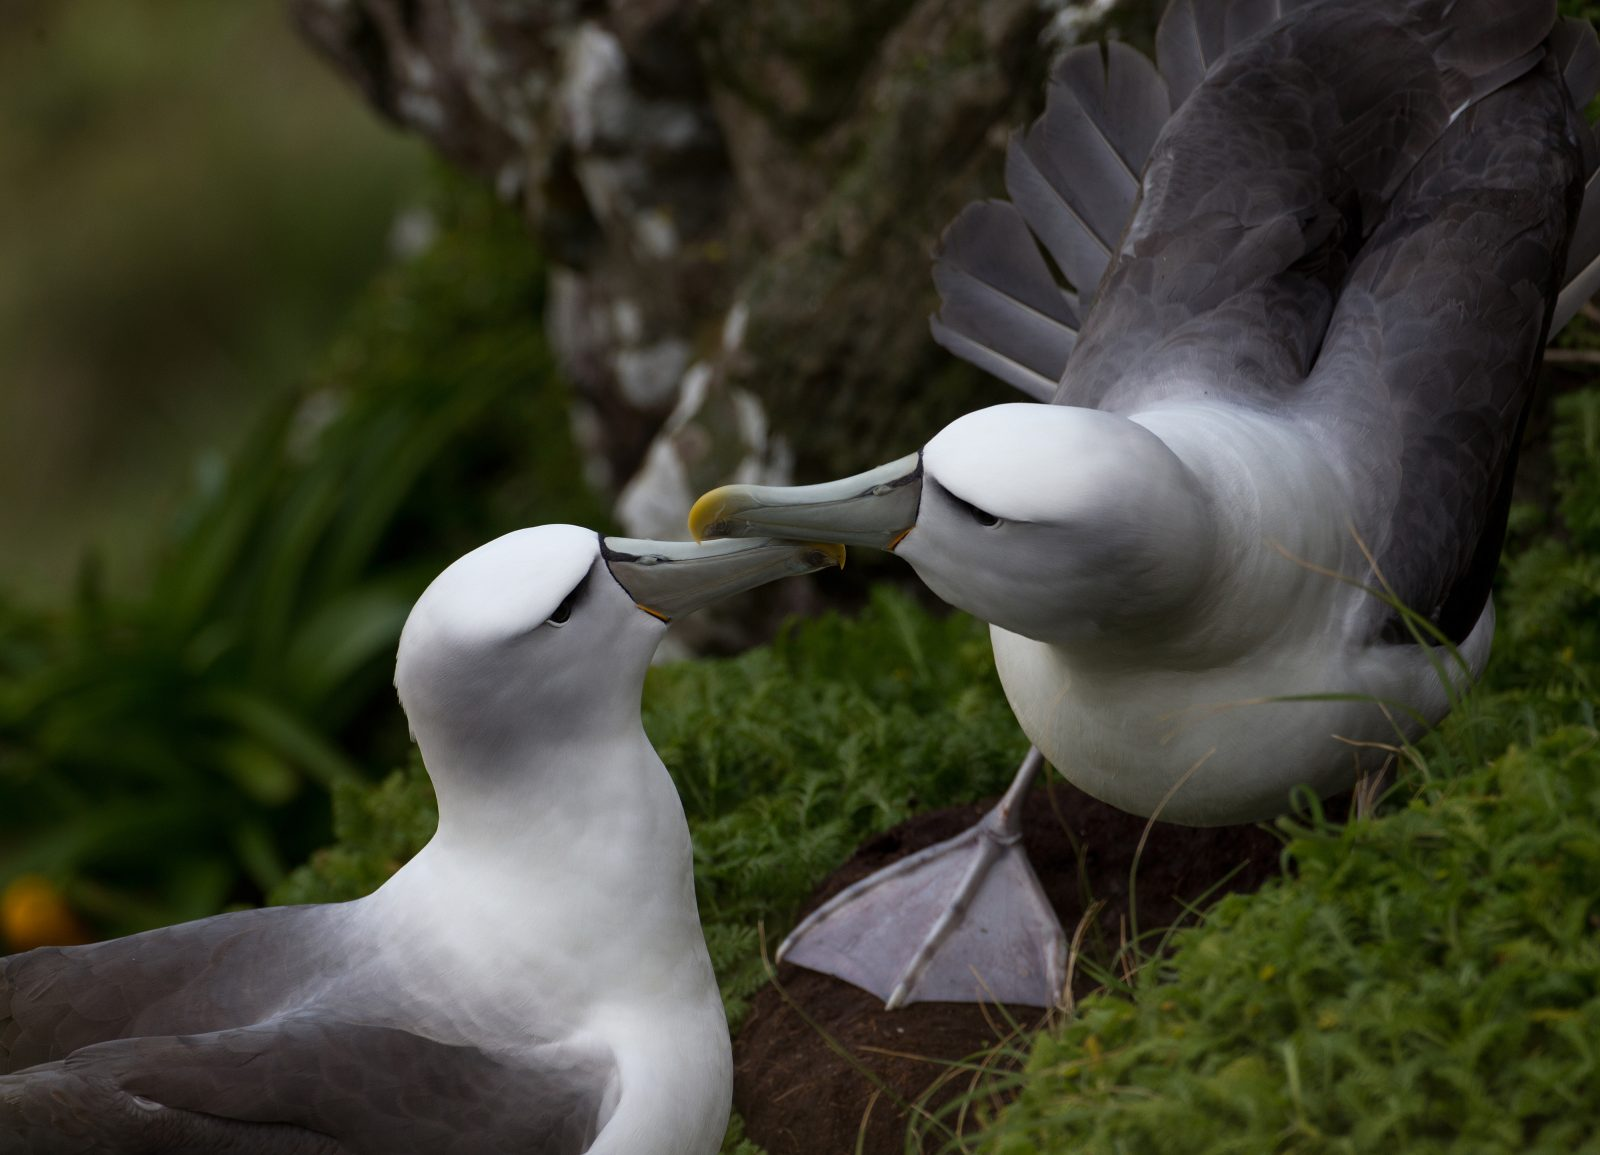 New Zealand and its surrounding islands are regarded as the albatross hotspot of the world, with eight species that occur nowhere else. One of these is the white-capped albatross, which is found in colonies only on the New Zealand subantarctic islands. The largest colony is on Disappointment Island, a rocky islet off the coast of Auckland Island, where an estimated 80,000 pairs breed in a tightly packed chaos of nests. In crowded colonies such as these, material for nest construction is at a premium, and the distance between nests is governed by the reach of the closest neighbours. The colony on Disappointment Island, which contains 90 per cent of the global breeding population, has been surveyed for the past five years. To minimise disturbance and gain a birds' eye view, scientists fly around the island in helicopters, taking thousands of pictures which then have to be painstakingly joined together so that nests can be identified and counted each year. Early indications from this extensive study suggest the population is in decline, but the reasons are not yet known. To shed some light on what these birds do at sea, scientists track individual birds using satellite transmitters attached to the feathers on their back. The transmitters have shown that some birds are attracted to the cast-offs from fishing vessels, and noticeably change their behaviour around them, but how this impacts on the species, or even how it might benefit from the interaction, is still not well understood.